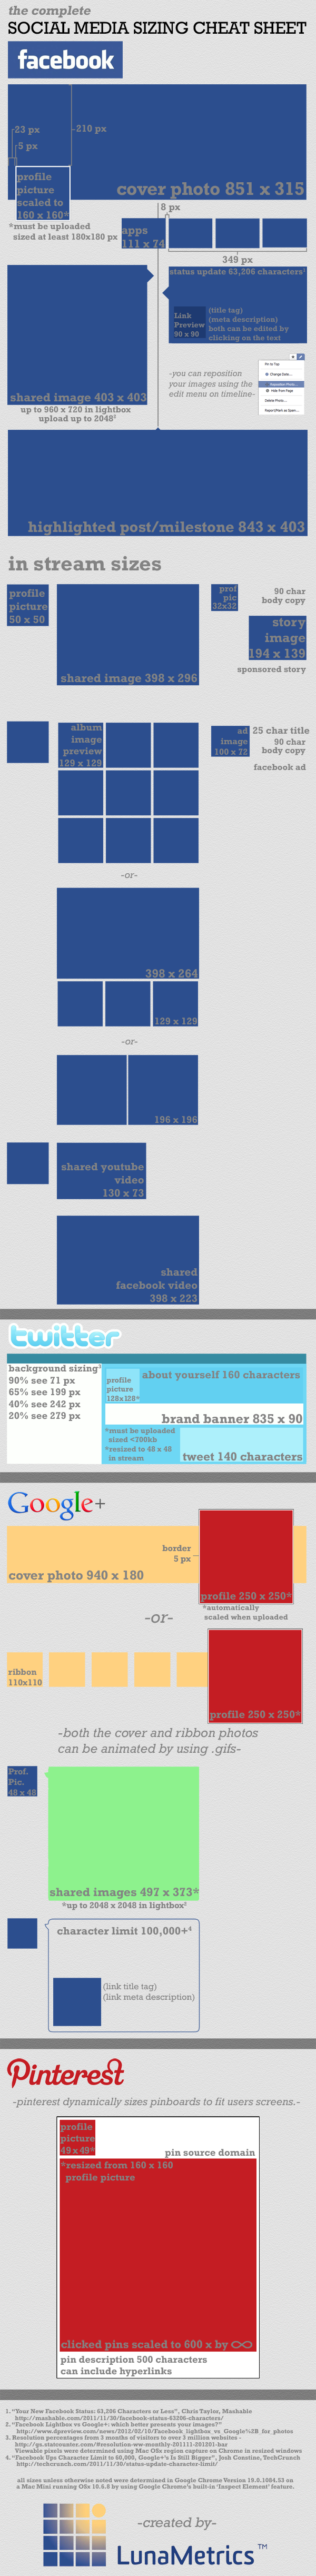 social media sizing infographic